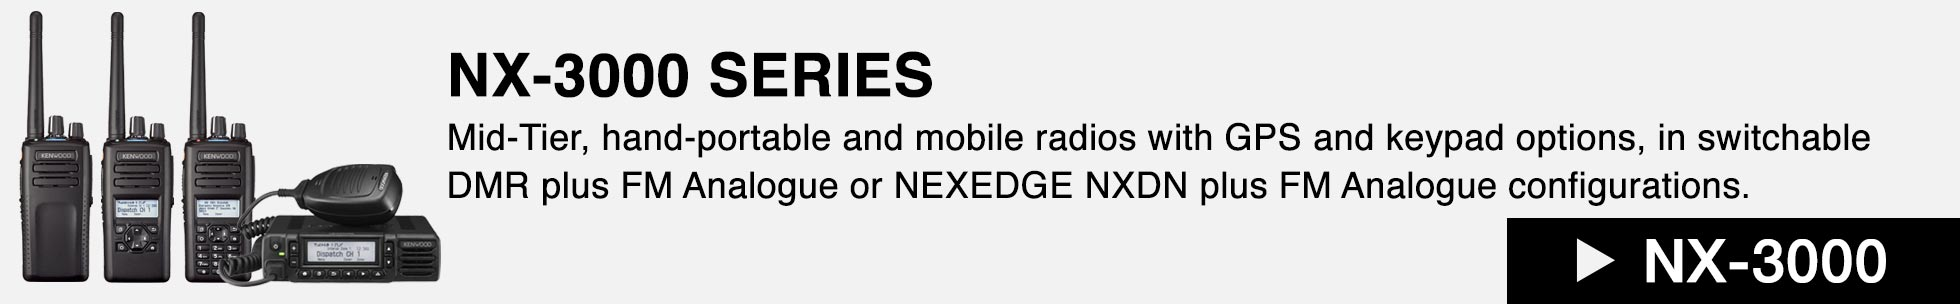 NX-3000 Series Two Way Radios